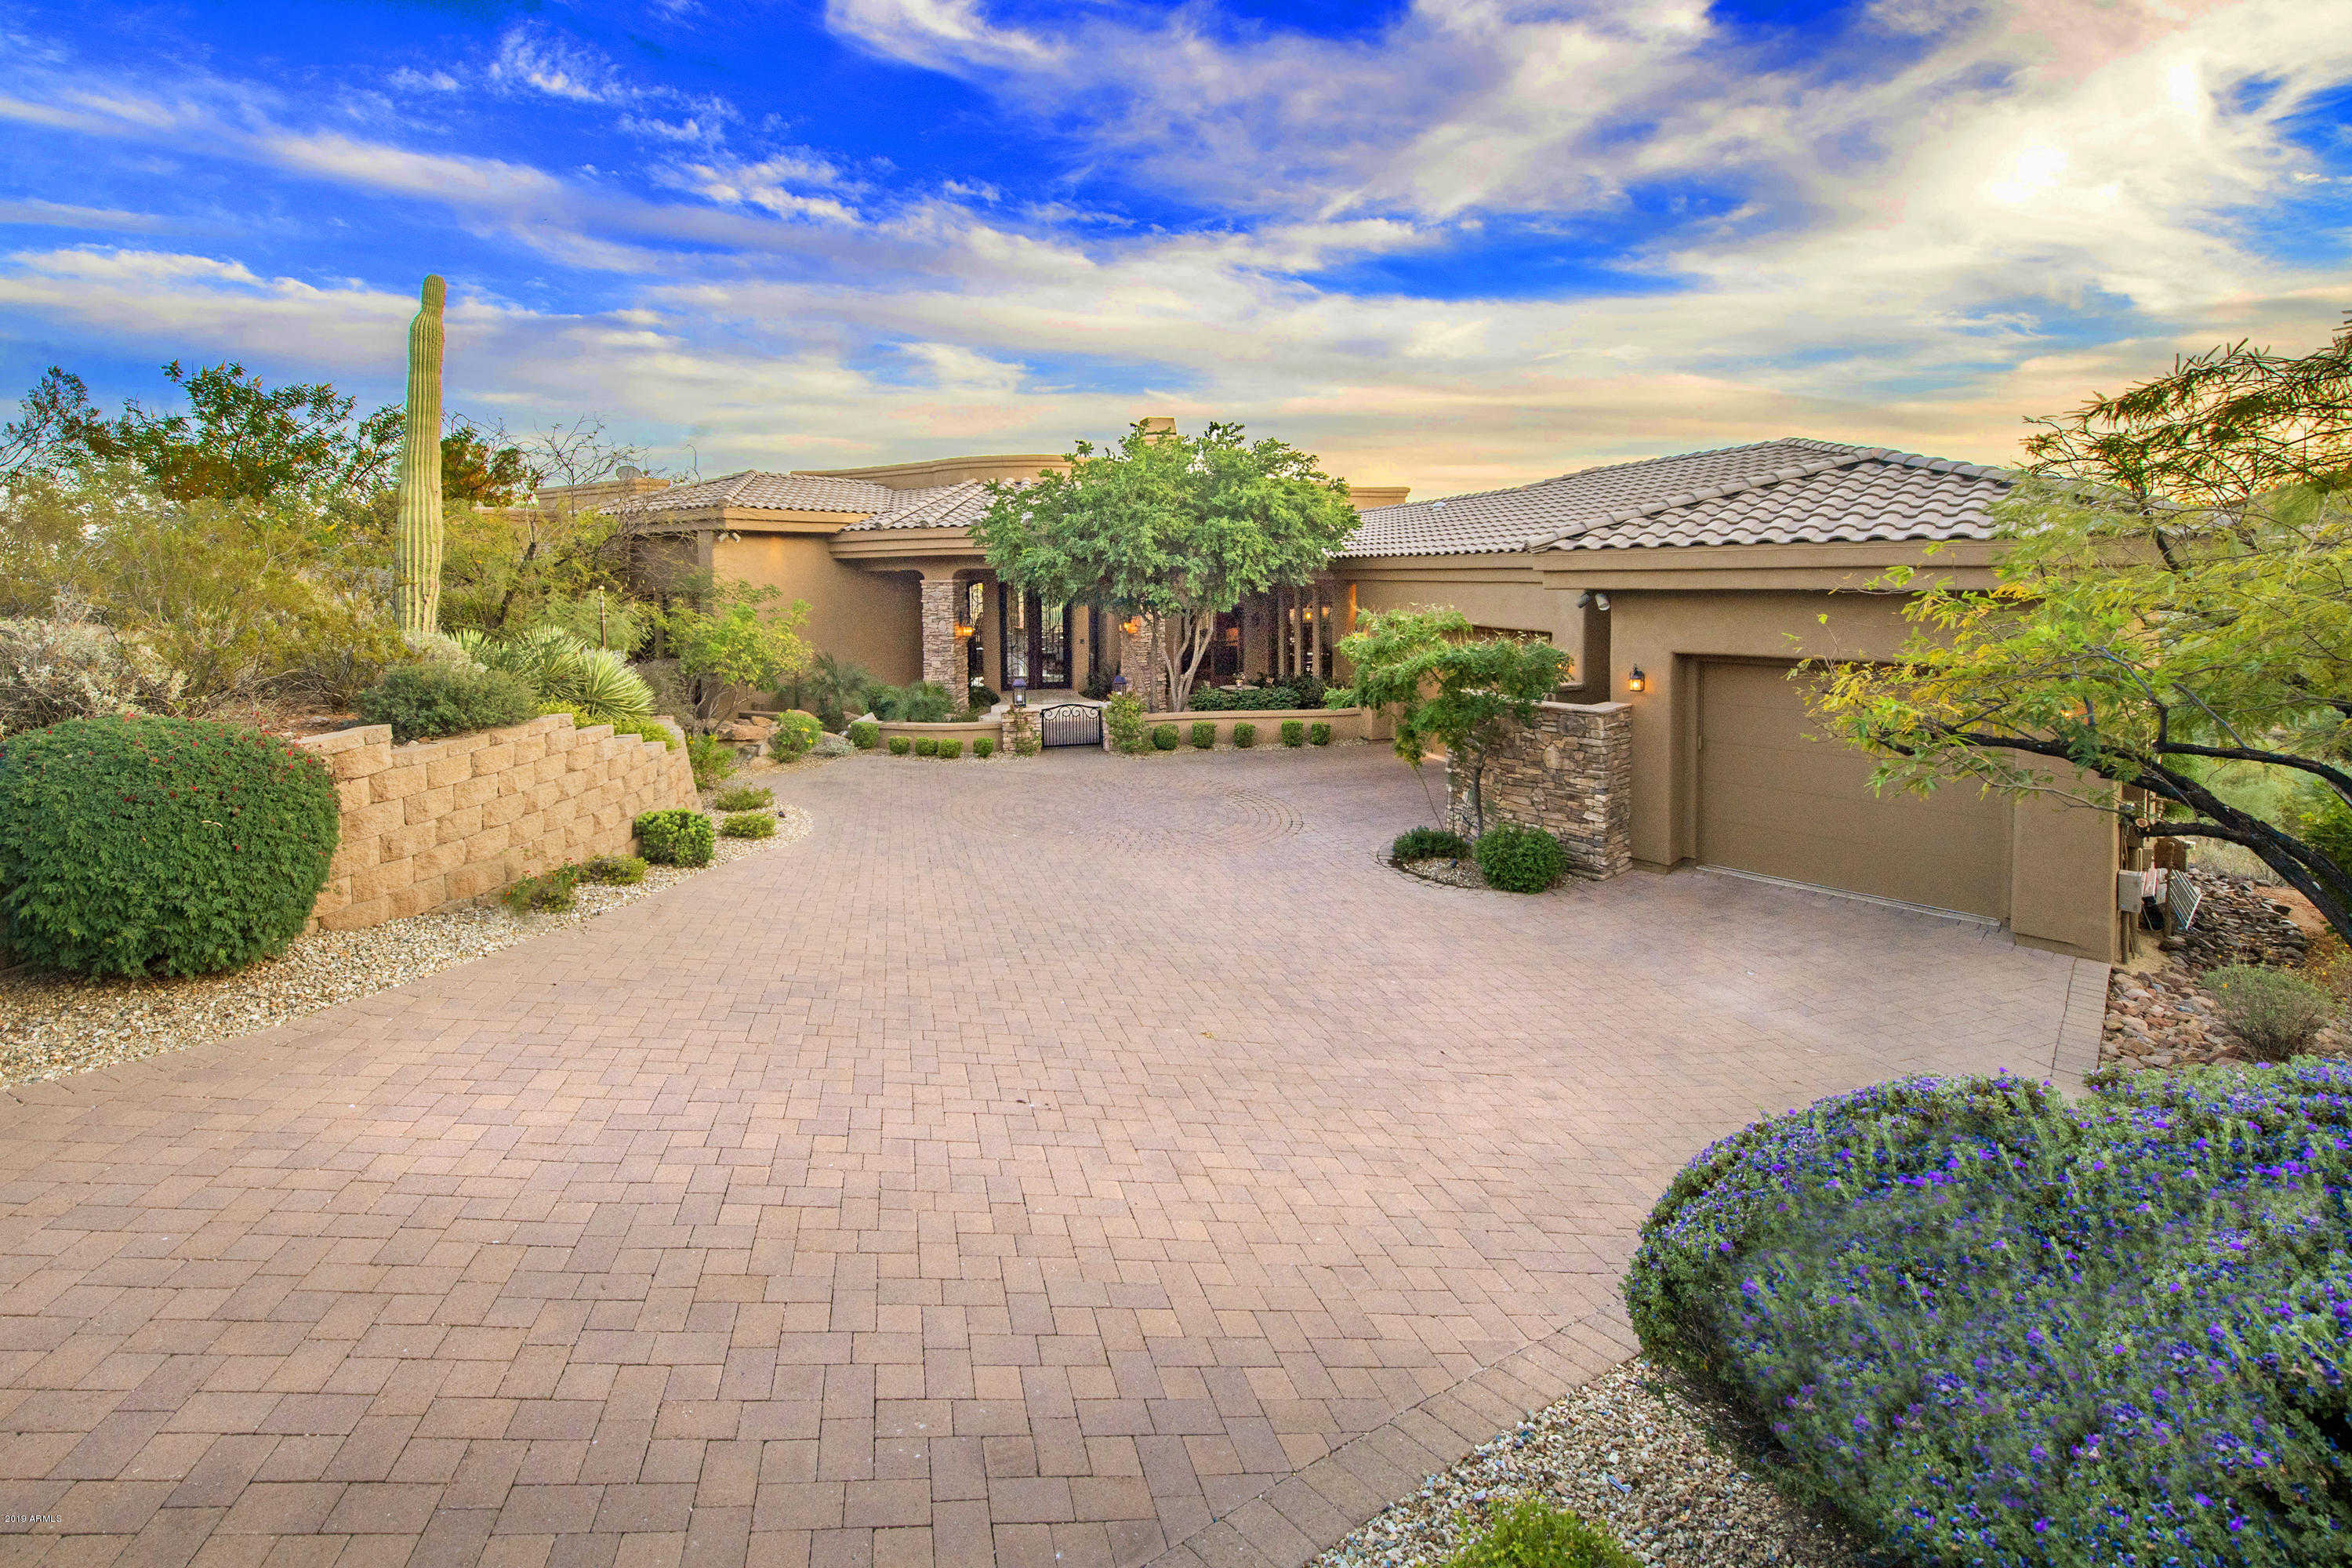 $2,675,000 - 4Br/4Ba - Home for Sale in Firerock Parcel H-1, Fountain Hills